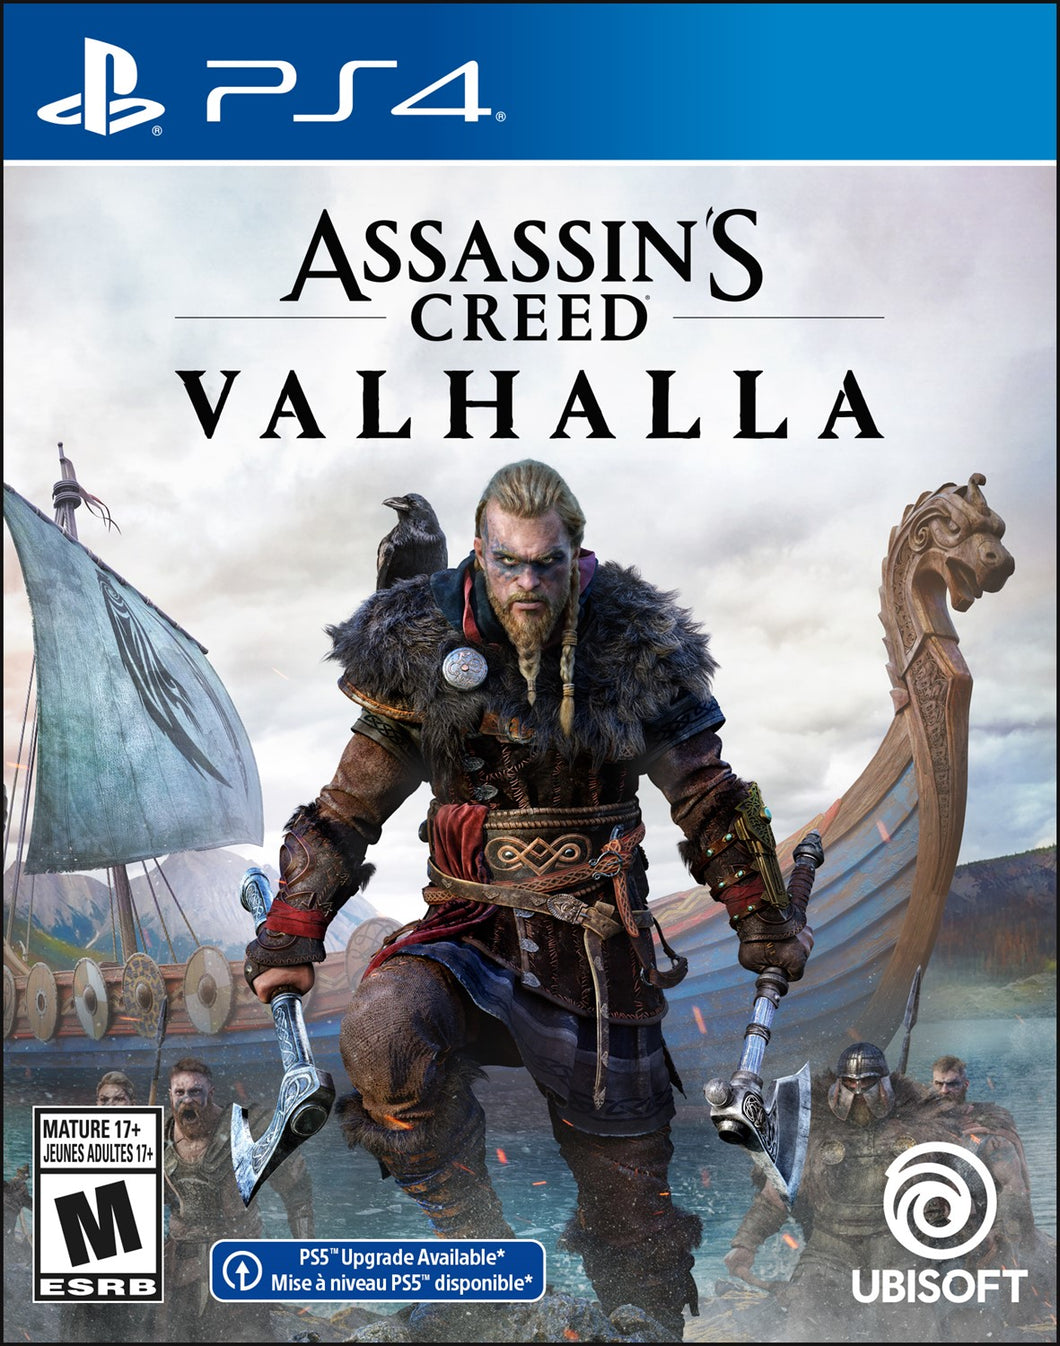 Assassin's Creed Valhalla - PS4 - PlayStation 4